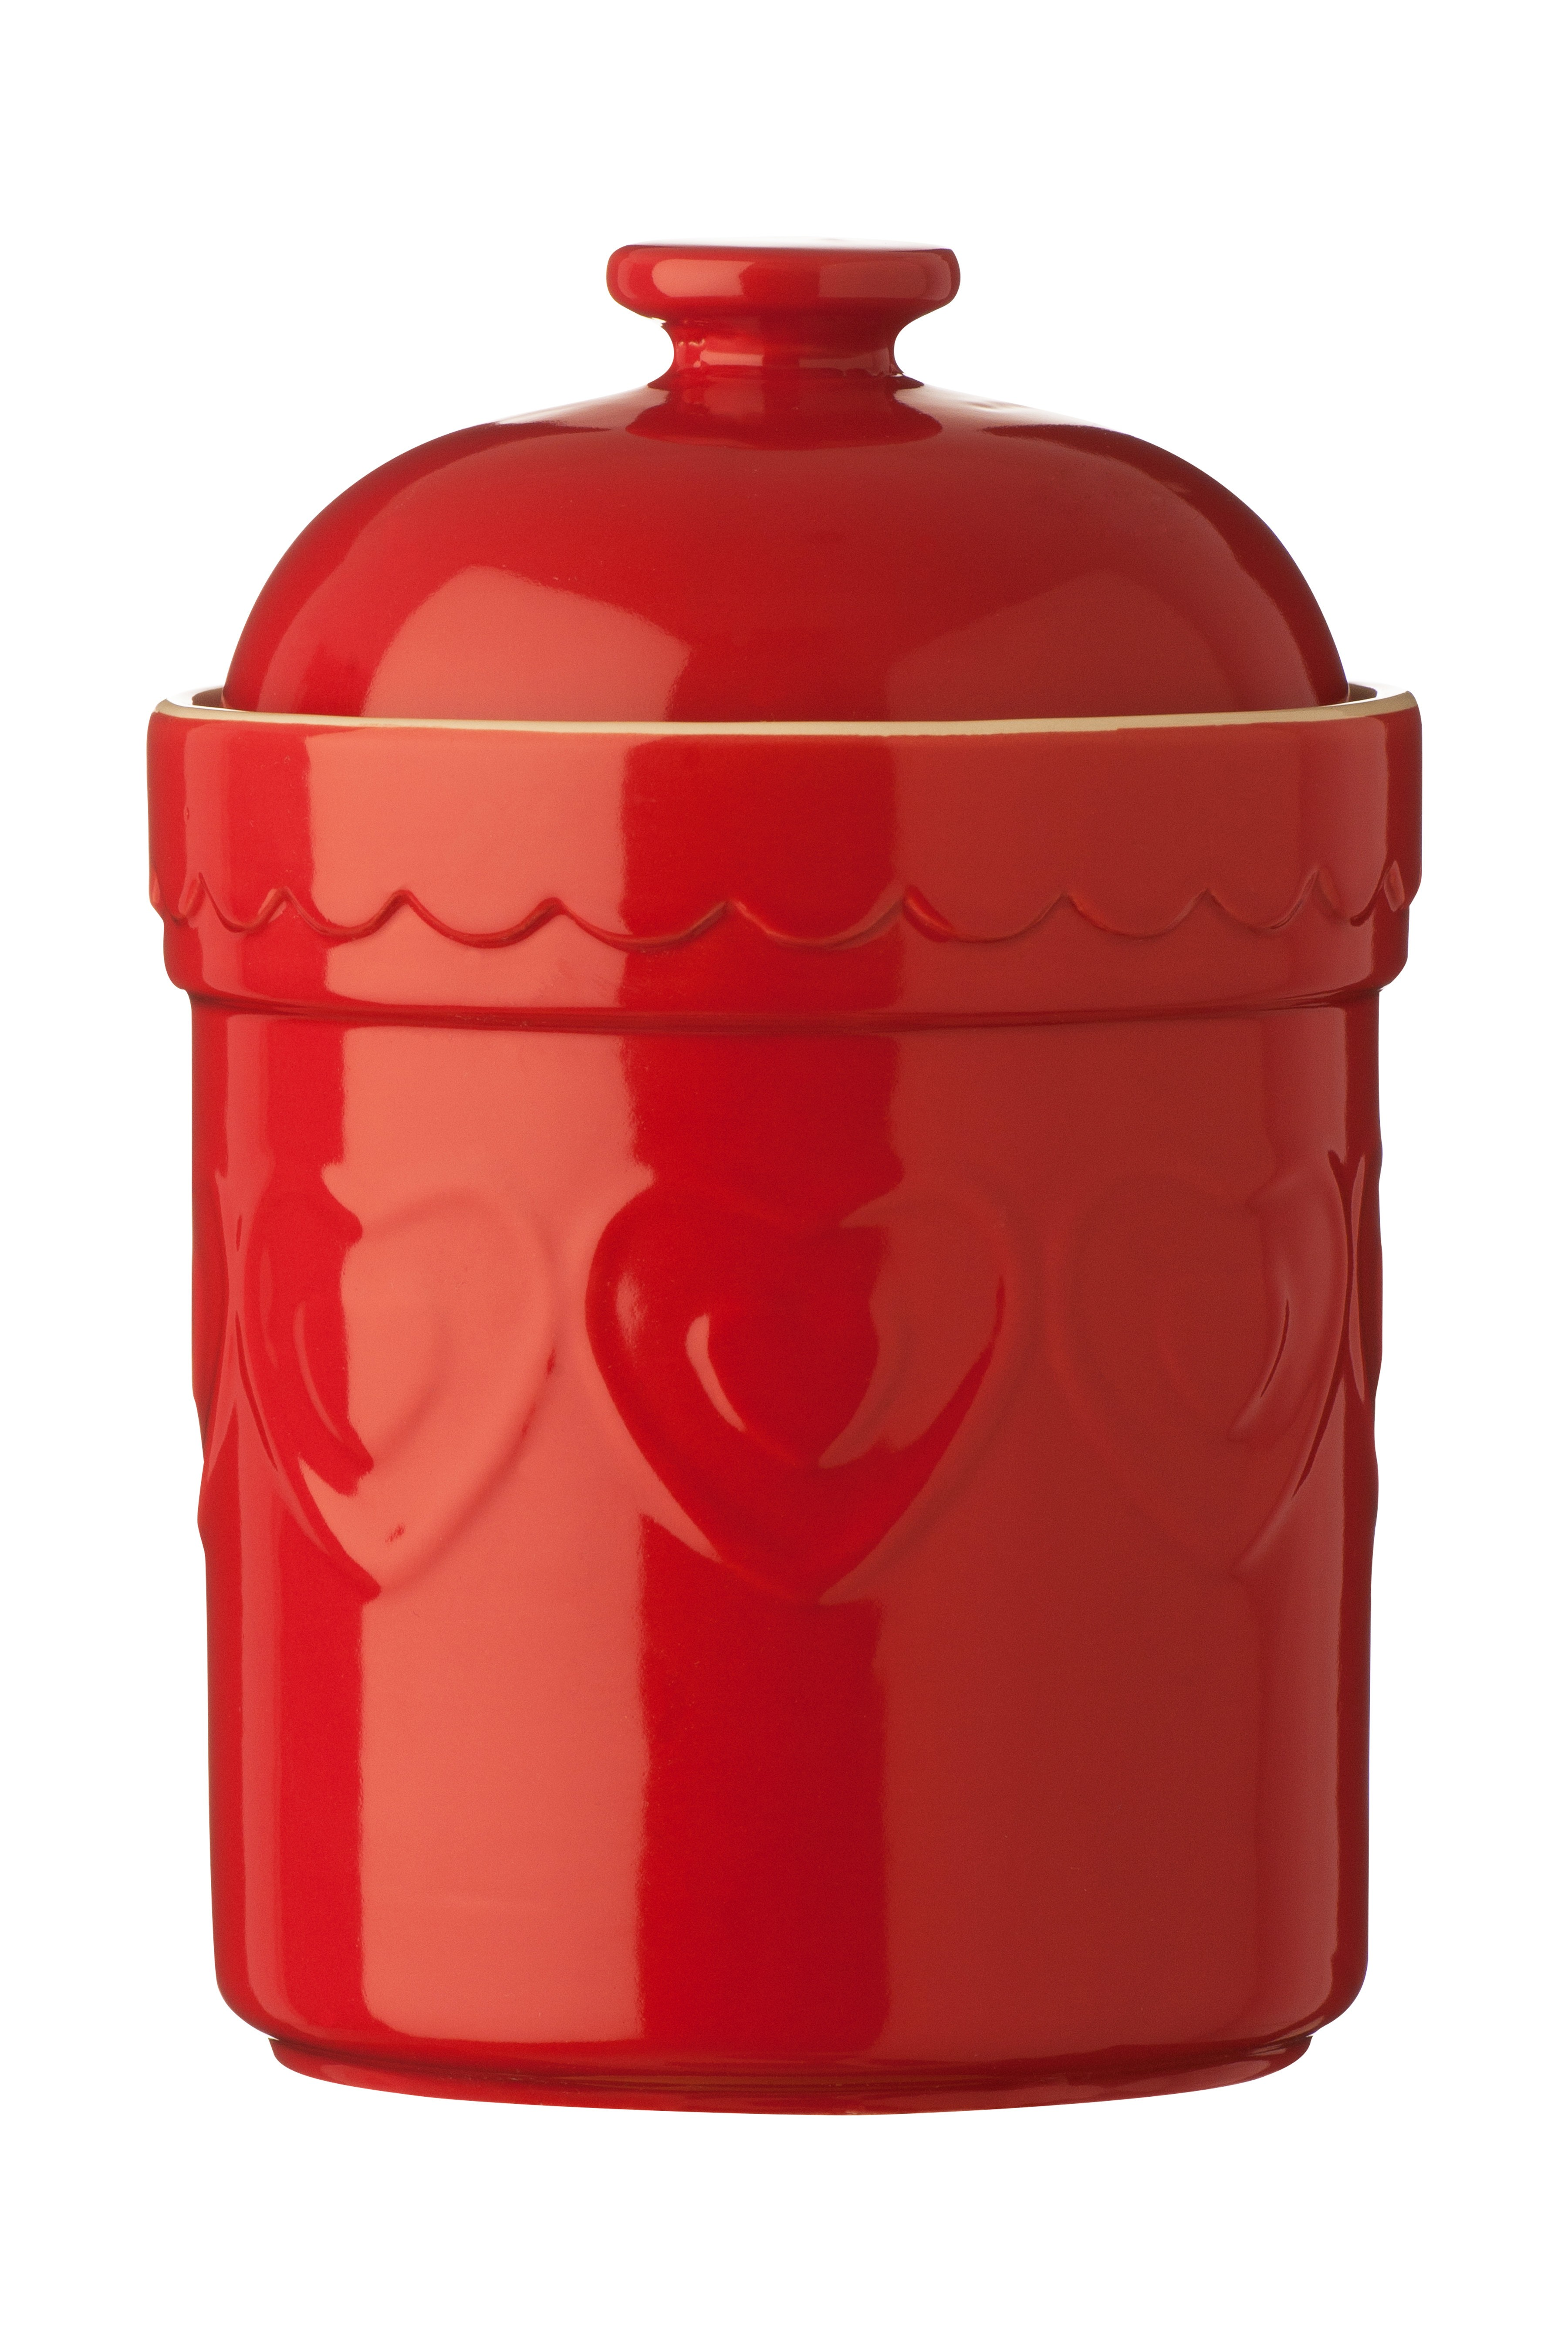 Sweet Heart Storage Canisters, Red - Set of 3